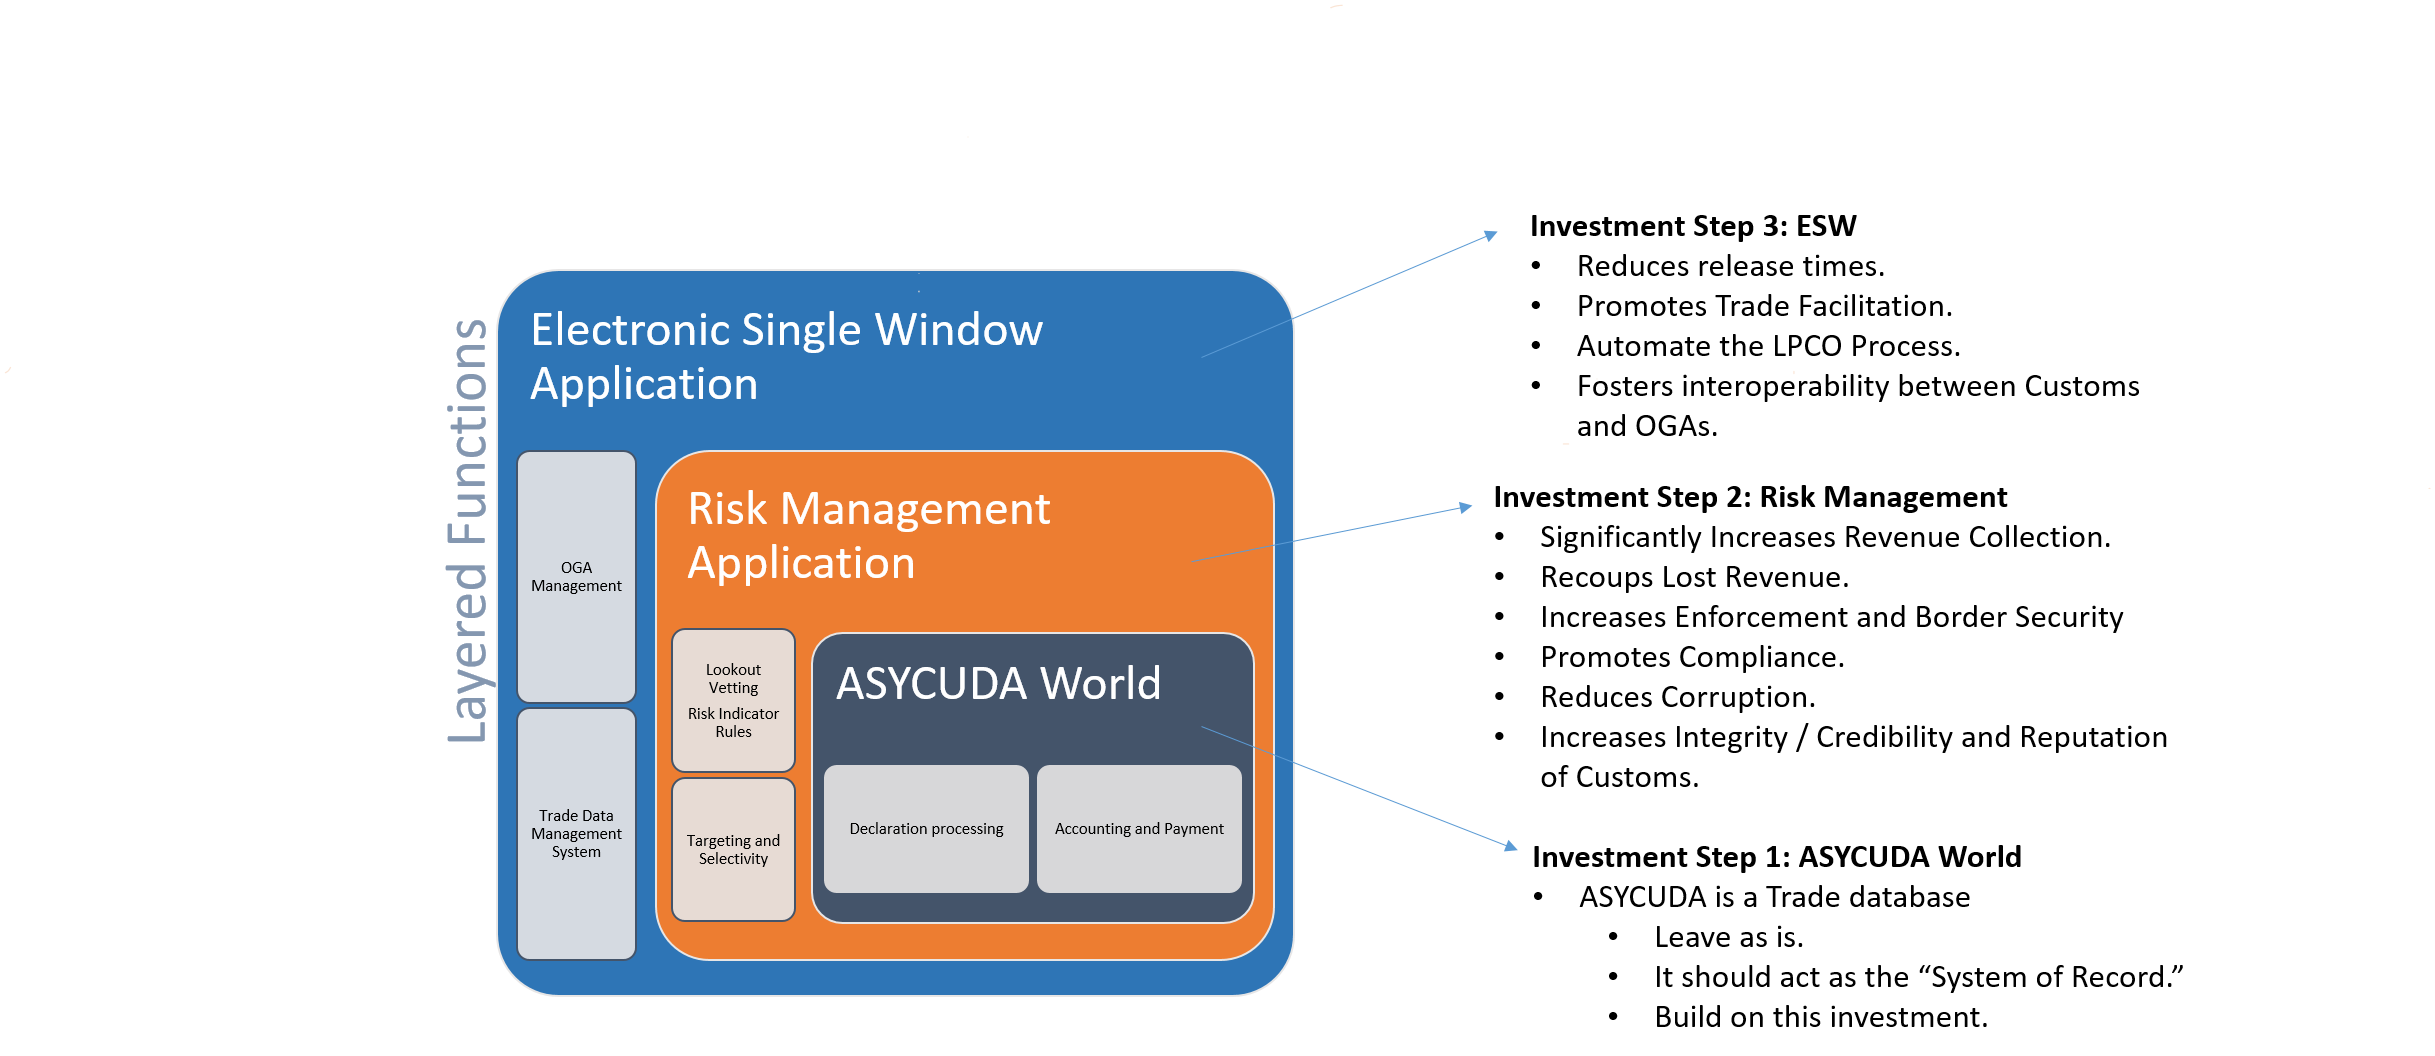 "ASYCUDA serves a purpose as an electronic filing system for Trade data.  The system is best served as a ""system of record"" and layered with functions for best practices in Risk Management and Electronic Single Window."